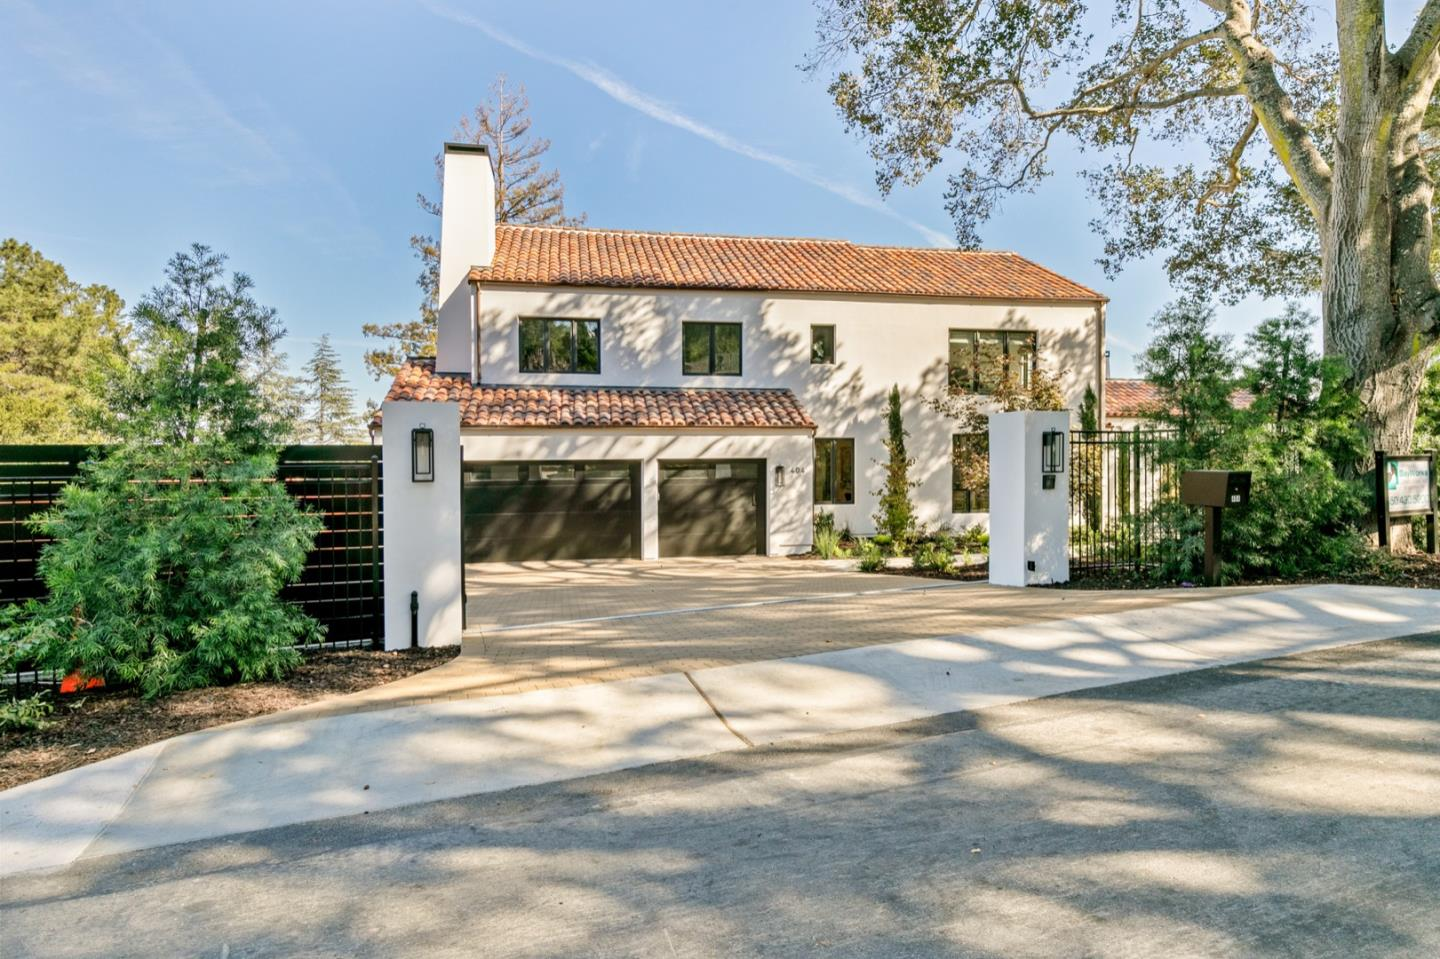 Entirely renovated and expanded, this just-completed whole-home transformation is a picture of chic modern luxury with a nod to its circa 1926 Mediterranean heritage. Set on approximately three-quarter acres beyond dual pedestrian gates for added privacy, the home opens to a palette of soft white walls, mid-tone white oak floors, and designer brushed gold fixtures and lighting, along with an exceptional array of marbles and Italian tiles.Five en suite bedrooms are arranged on the upper and lower levels easily accommodating a variety of lifestyle needs, plus there is a detached one-bedroom, one bath guest house with full kitchen, which doubles for poolside entertaining. Adding to the appeal is a dedicated office, a tremendous recreation room, a fitness center, plus a fully customized wine cellar. Remarkable in its beauty and incredible livability in a sought-after premier location midway between San Francisco and Silicon Valley this is the ultimate family or executive retreat